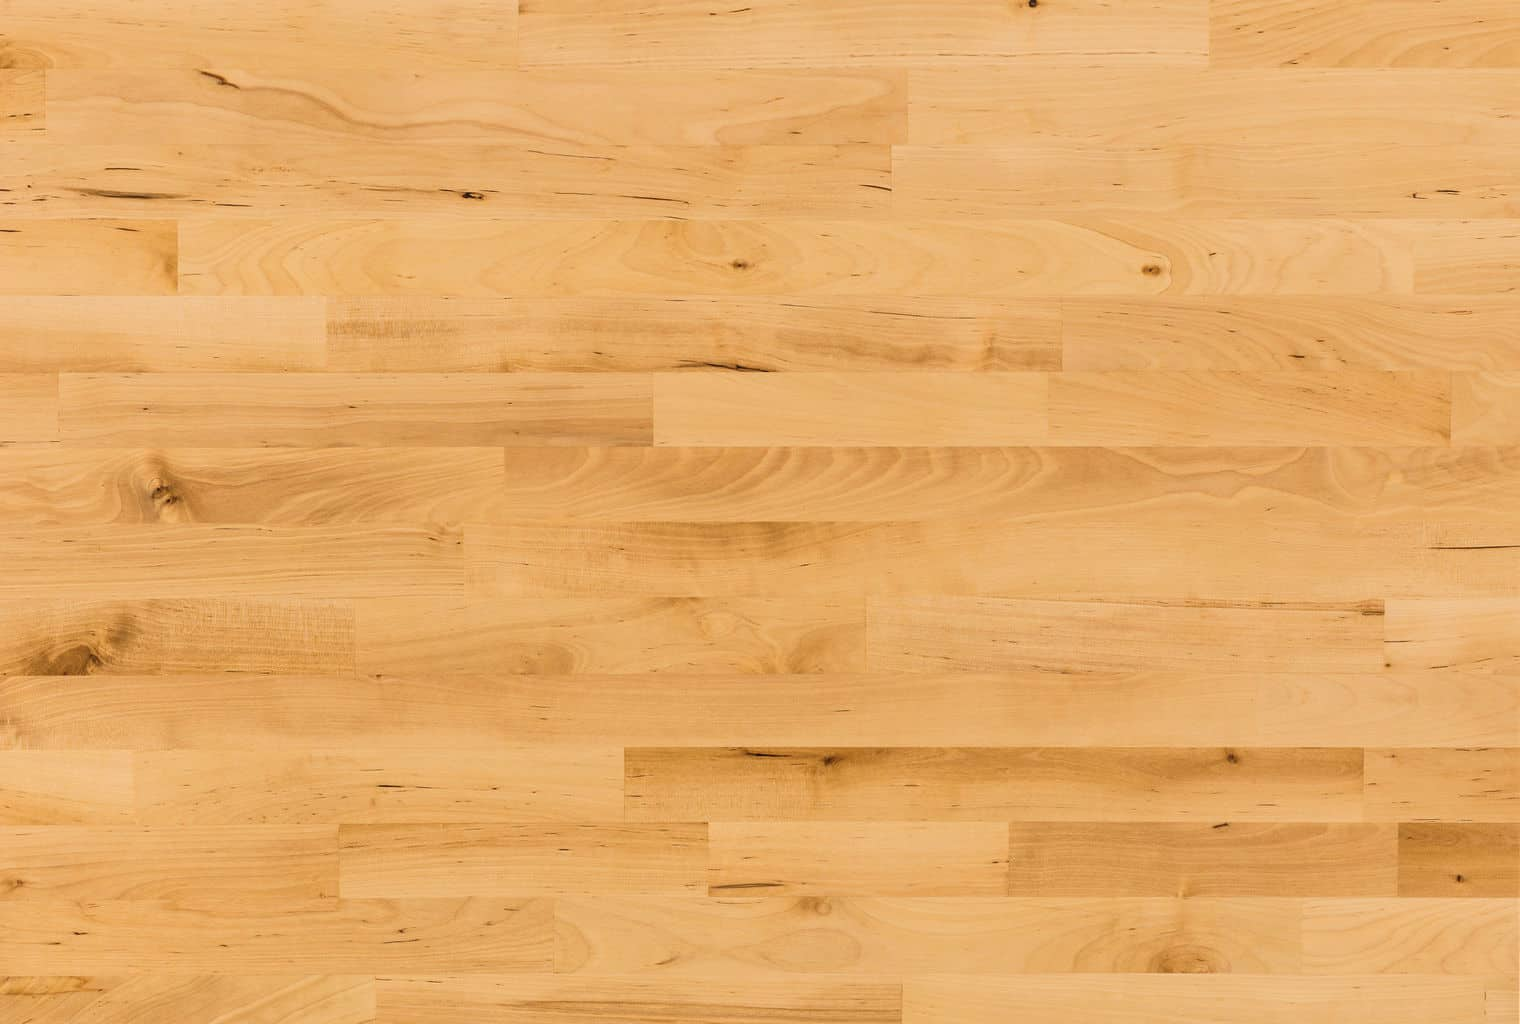 With Some Birch Flooring Options The Sapwood And Heartwood May Be Blended To Provide An Interesting Contrast That Makes Unique Among